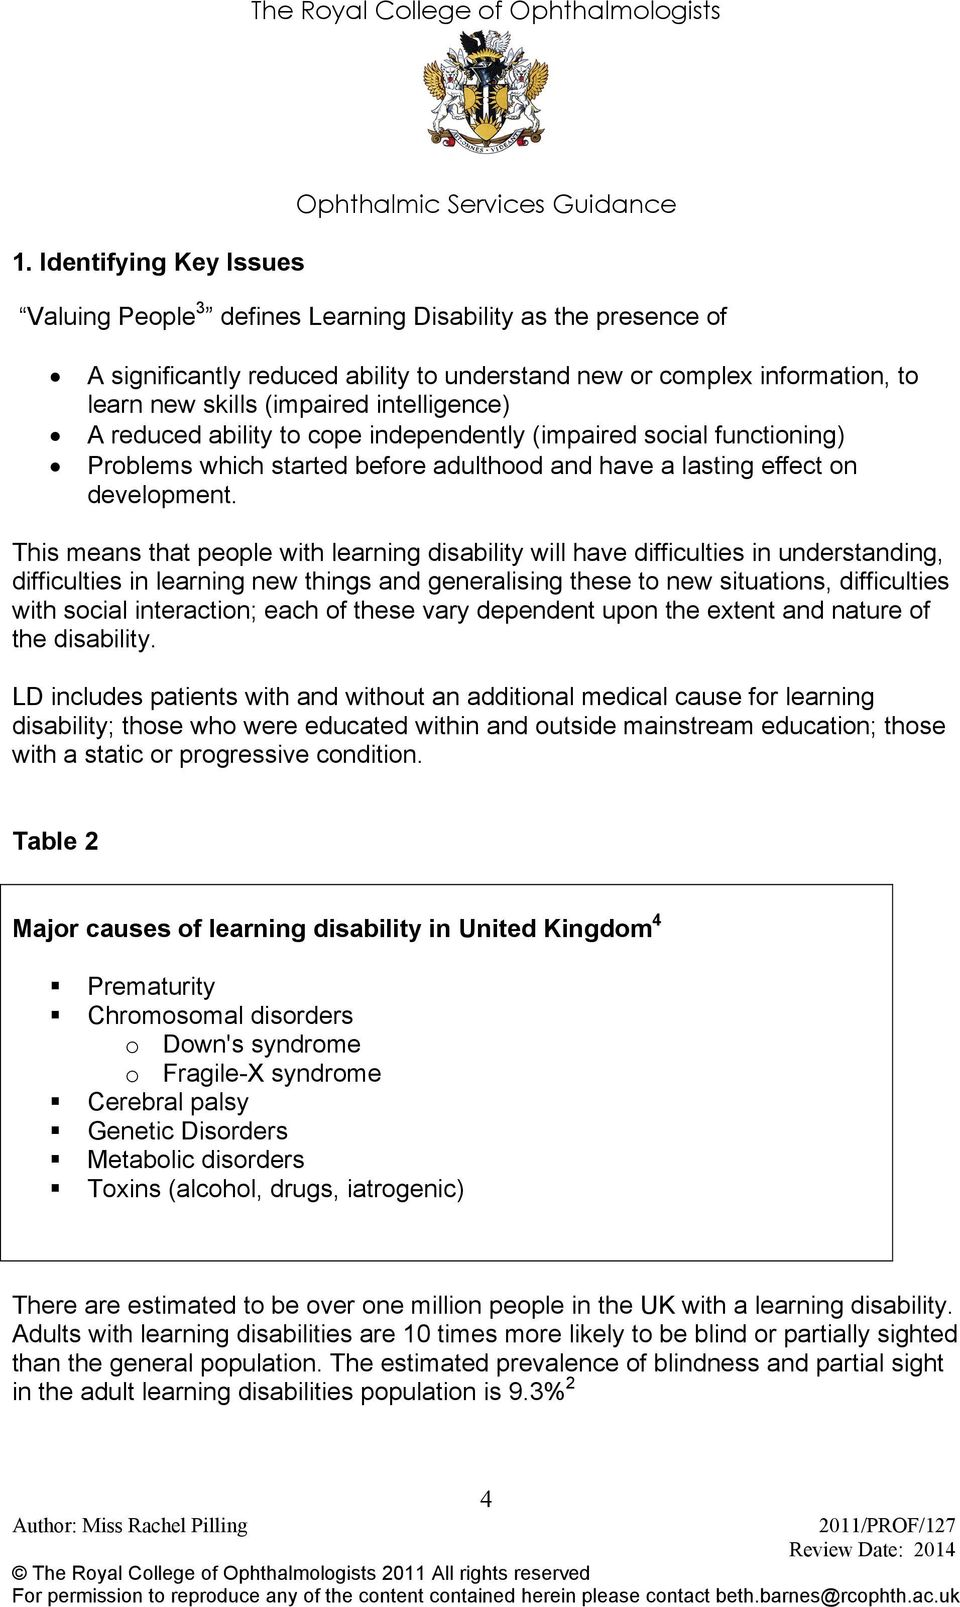 This means that people with learning disability will have difficulties in understanding, difficulties in learning new things and generalising these to new situations, difficulties with social